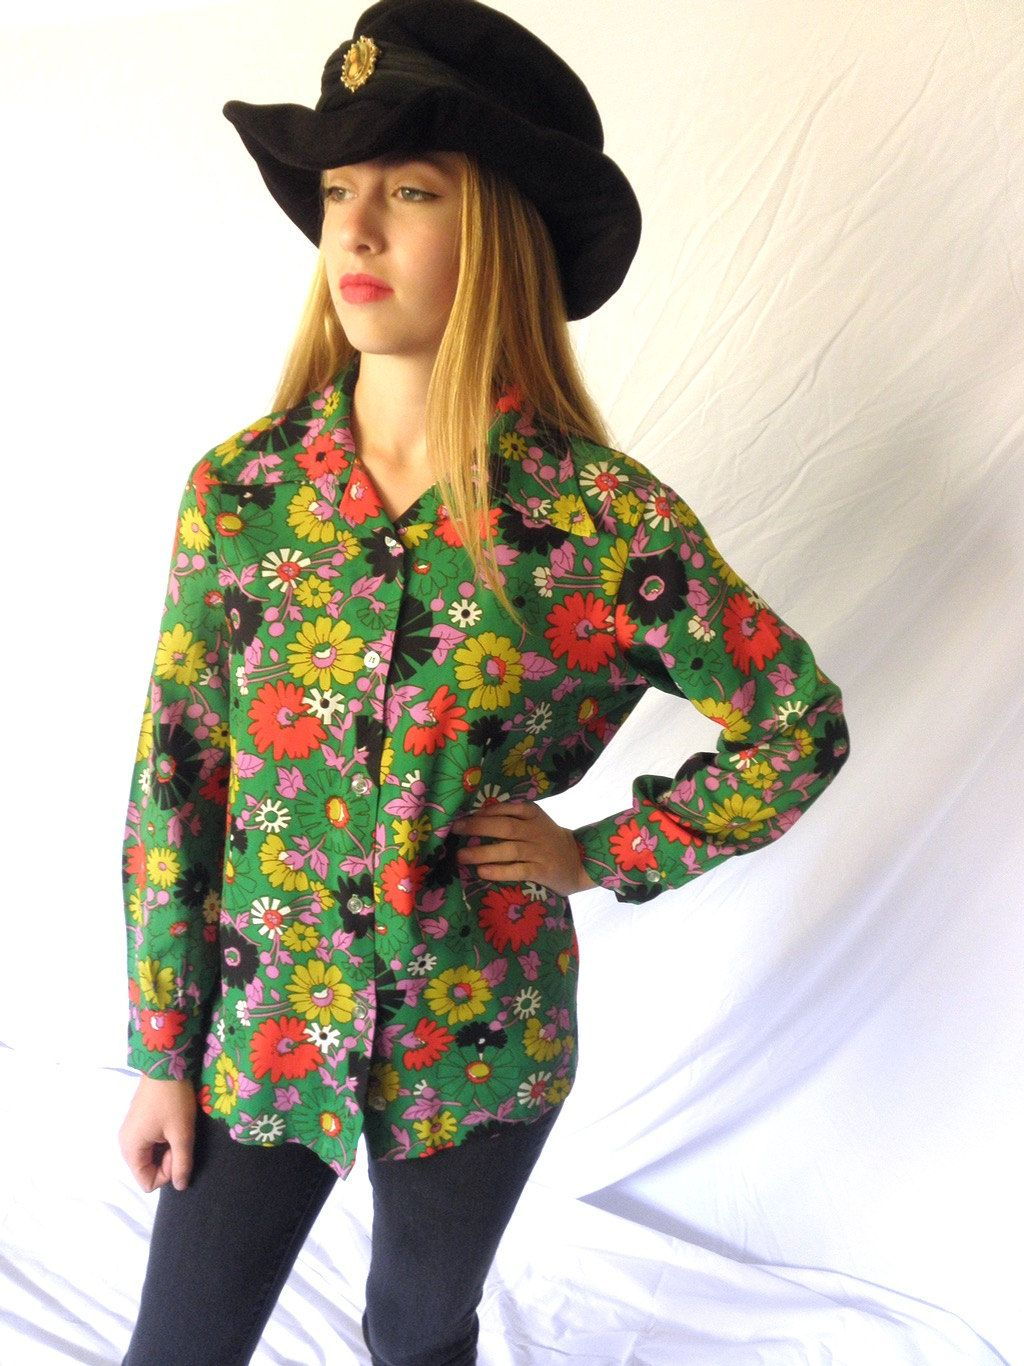 ad8739d5249db7 Vintage 70s Hippie Chick Floral Ladies Shirt Polyester Long Sleeved Blouse  Hip Boho Flower Power Jackpot Jen by JackpotJen on Etsy